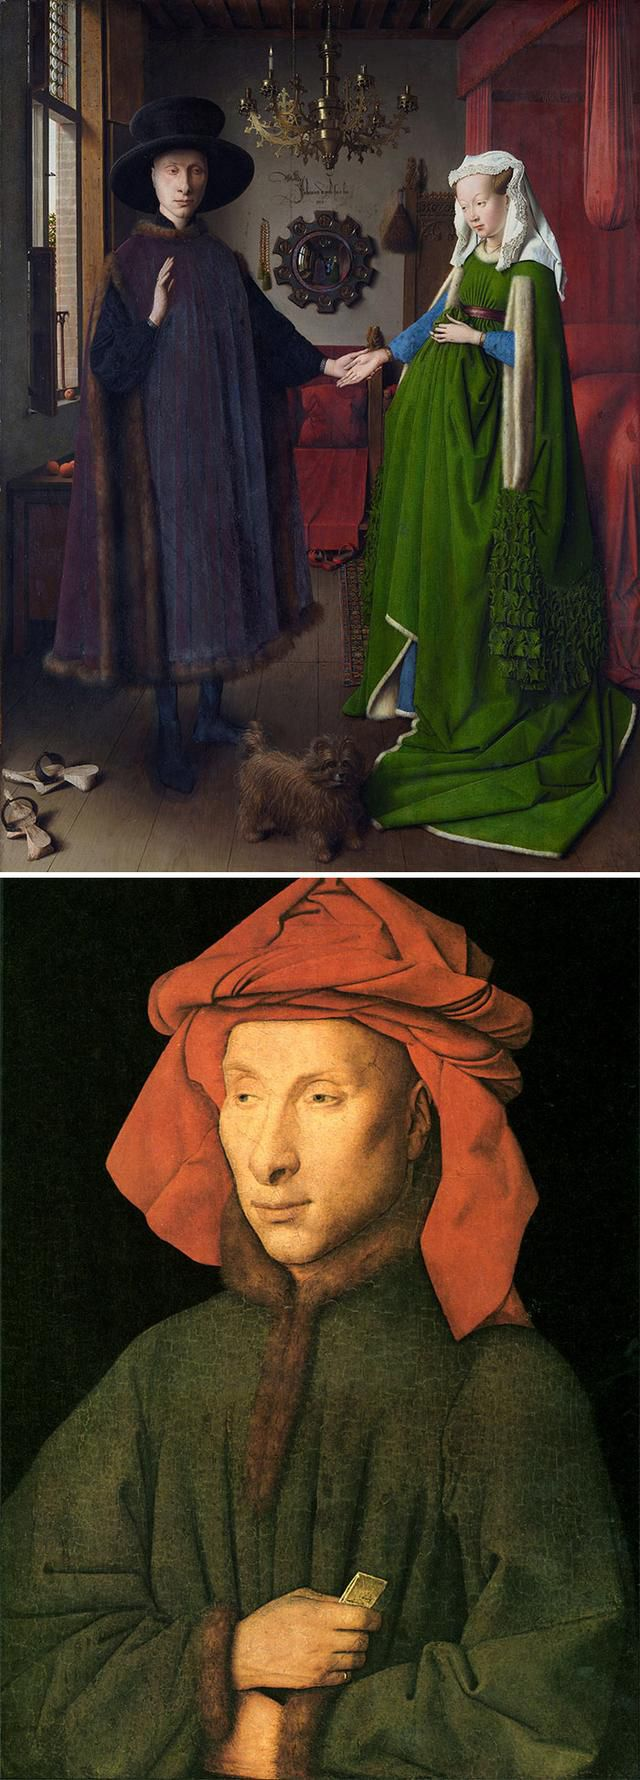 The Internet Teaches Us How To Recognize Famous Painters